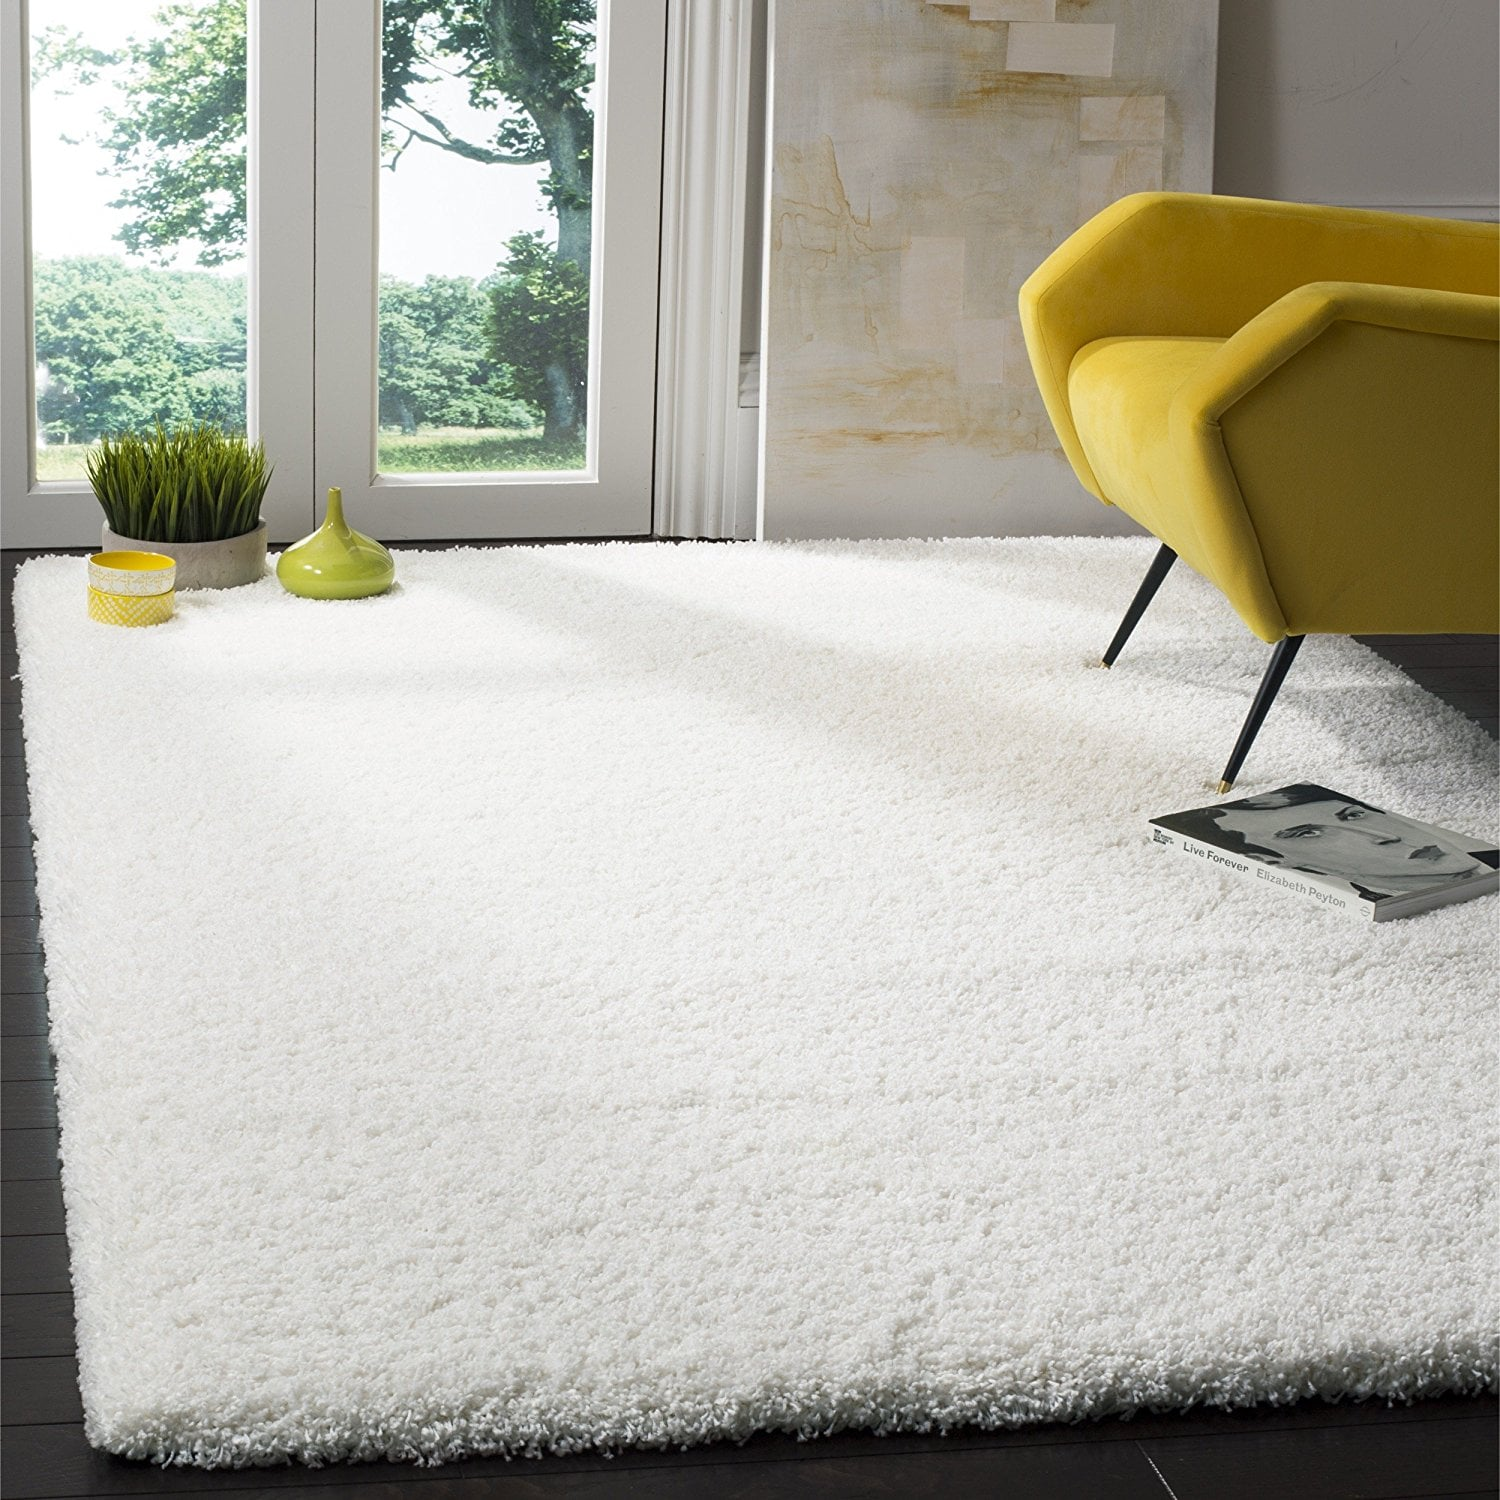 Best Cheap Area Rug From Amazon Popsugar Home